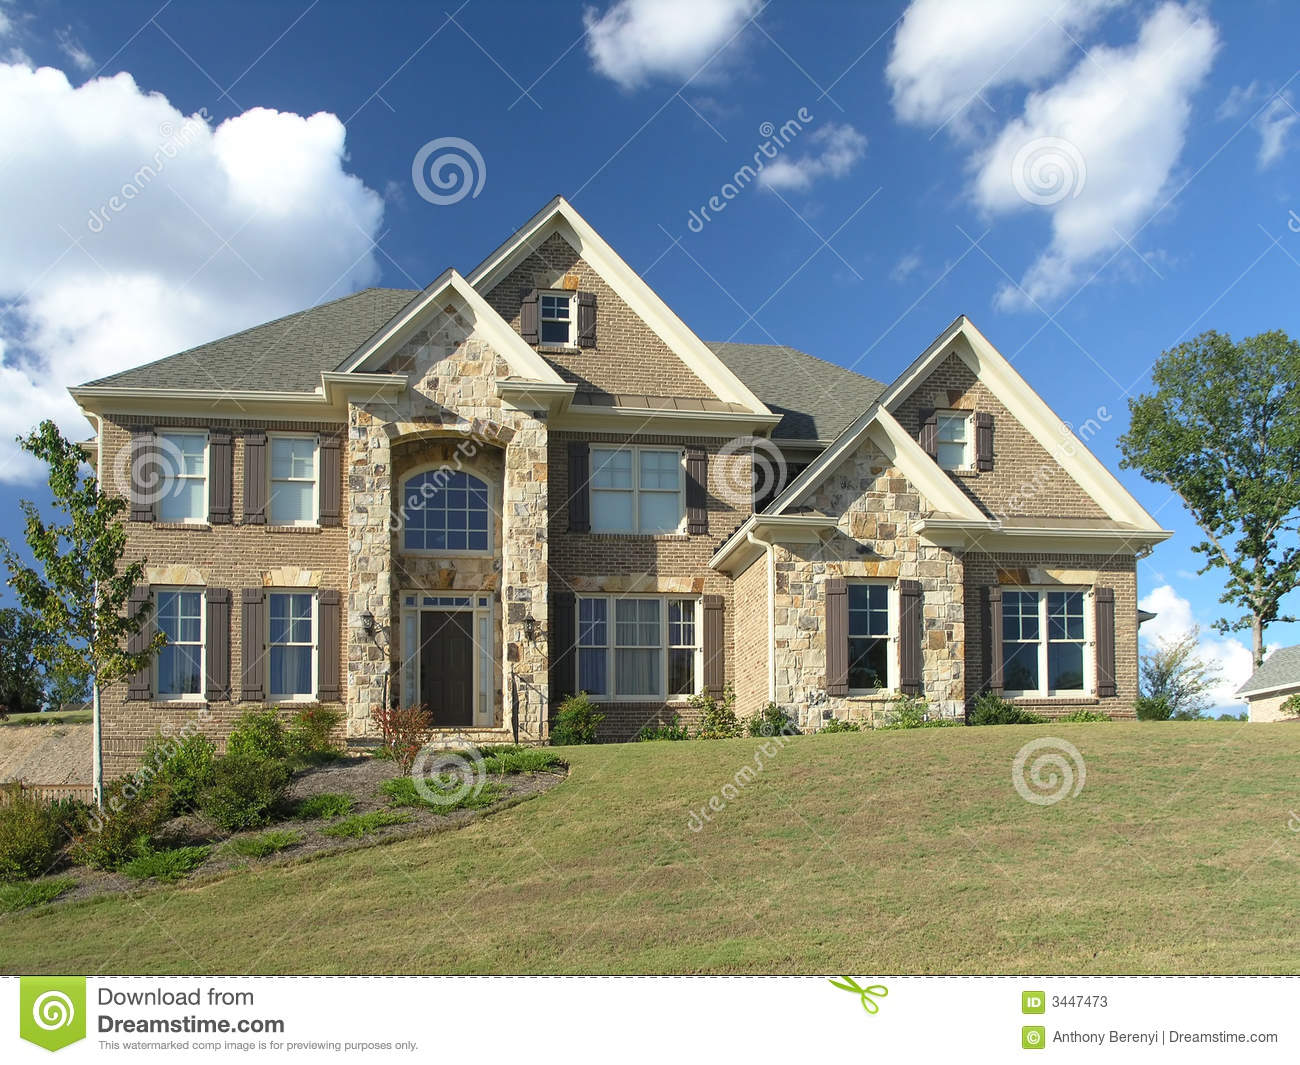 Luxury home exterior 57 stock photos image 3447473 for Luxury home exterior